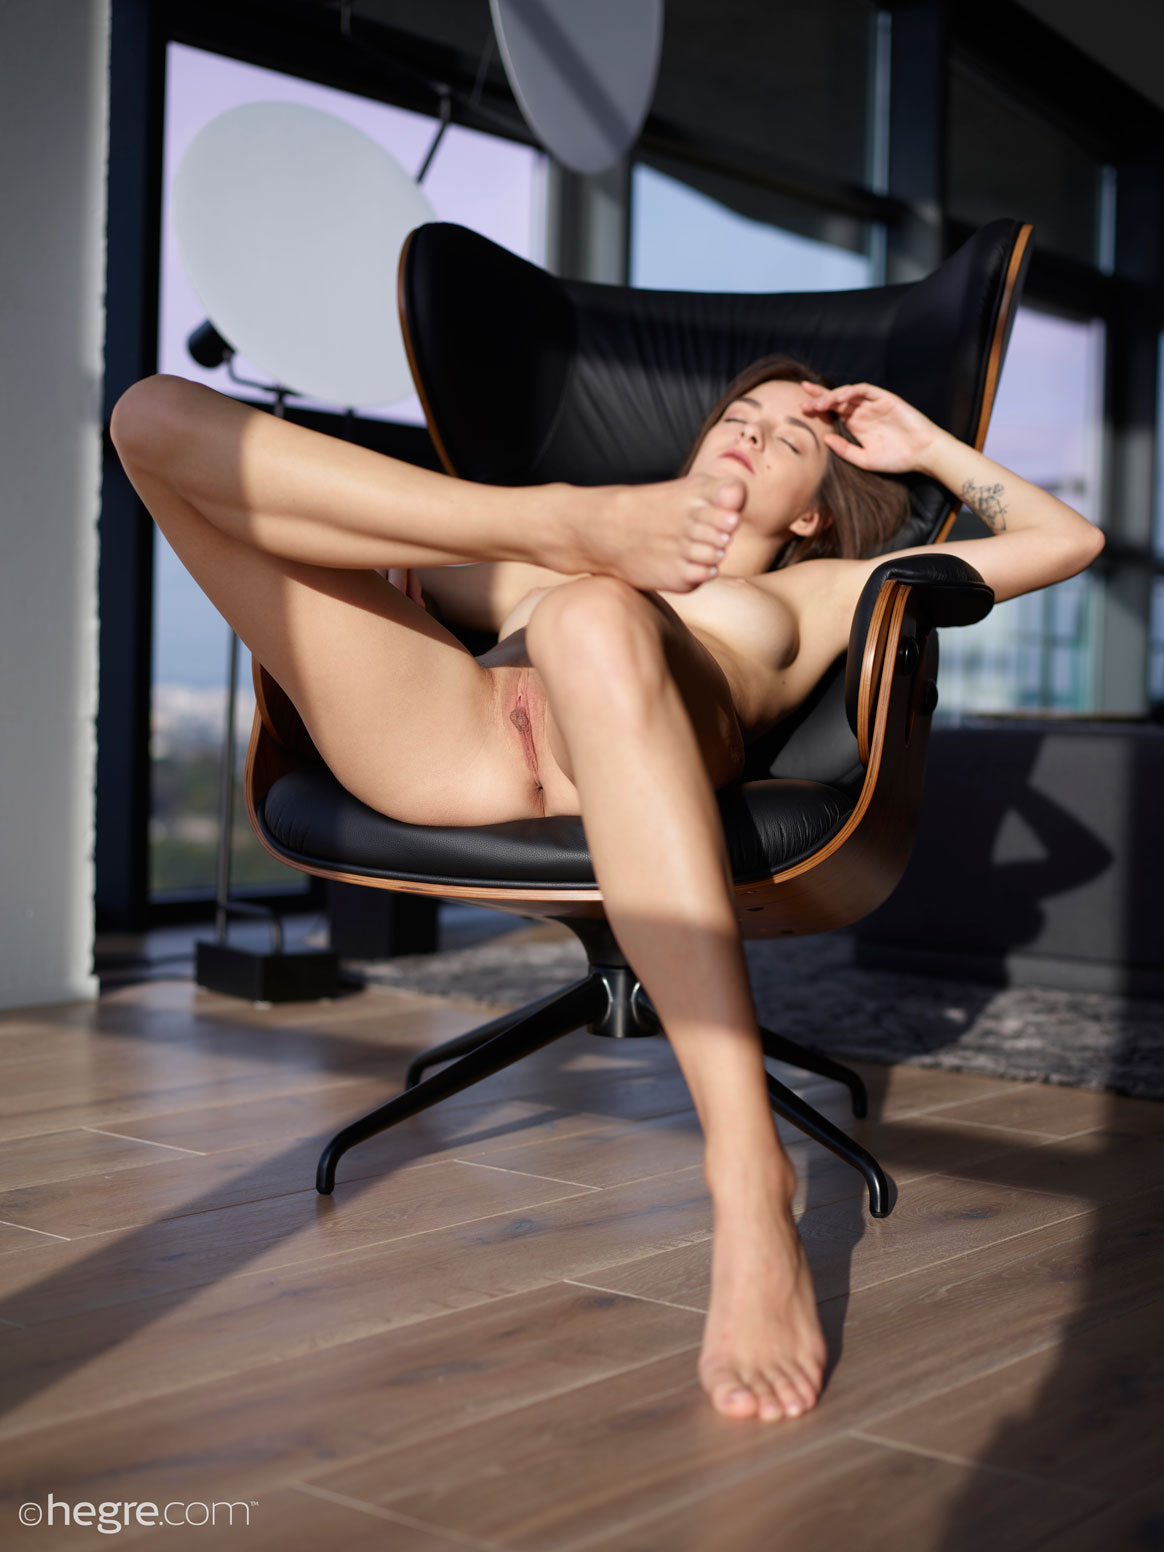 gyrls arina-naked-in-her-chair